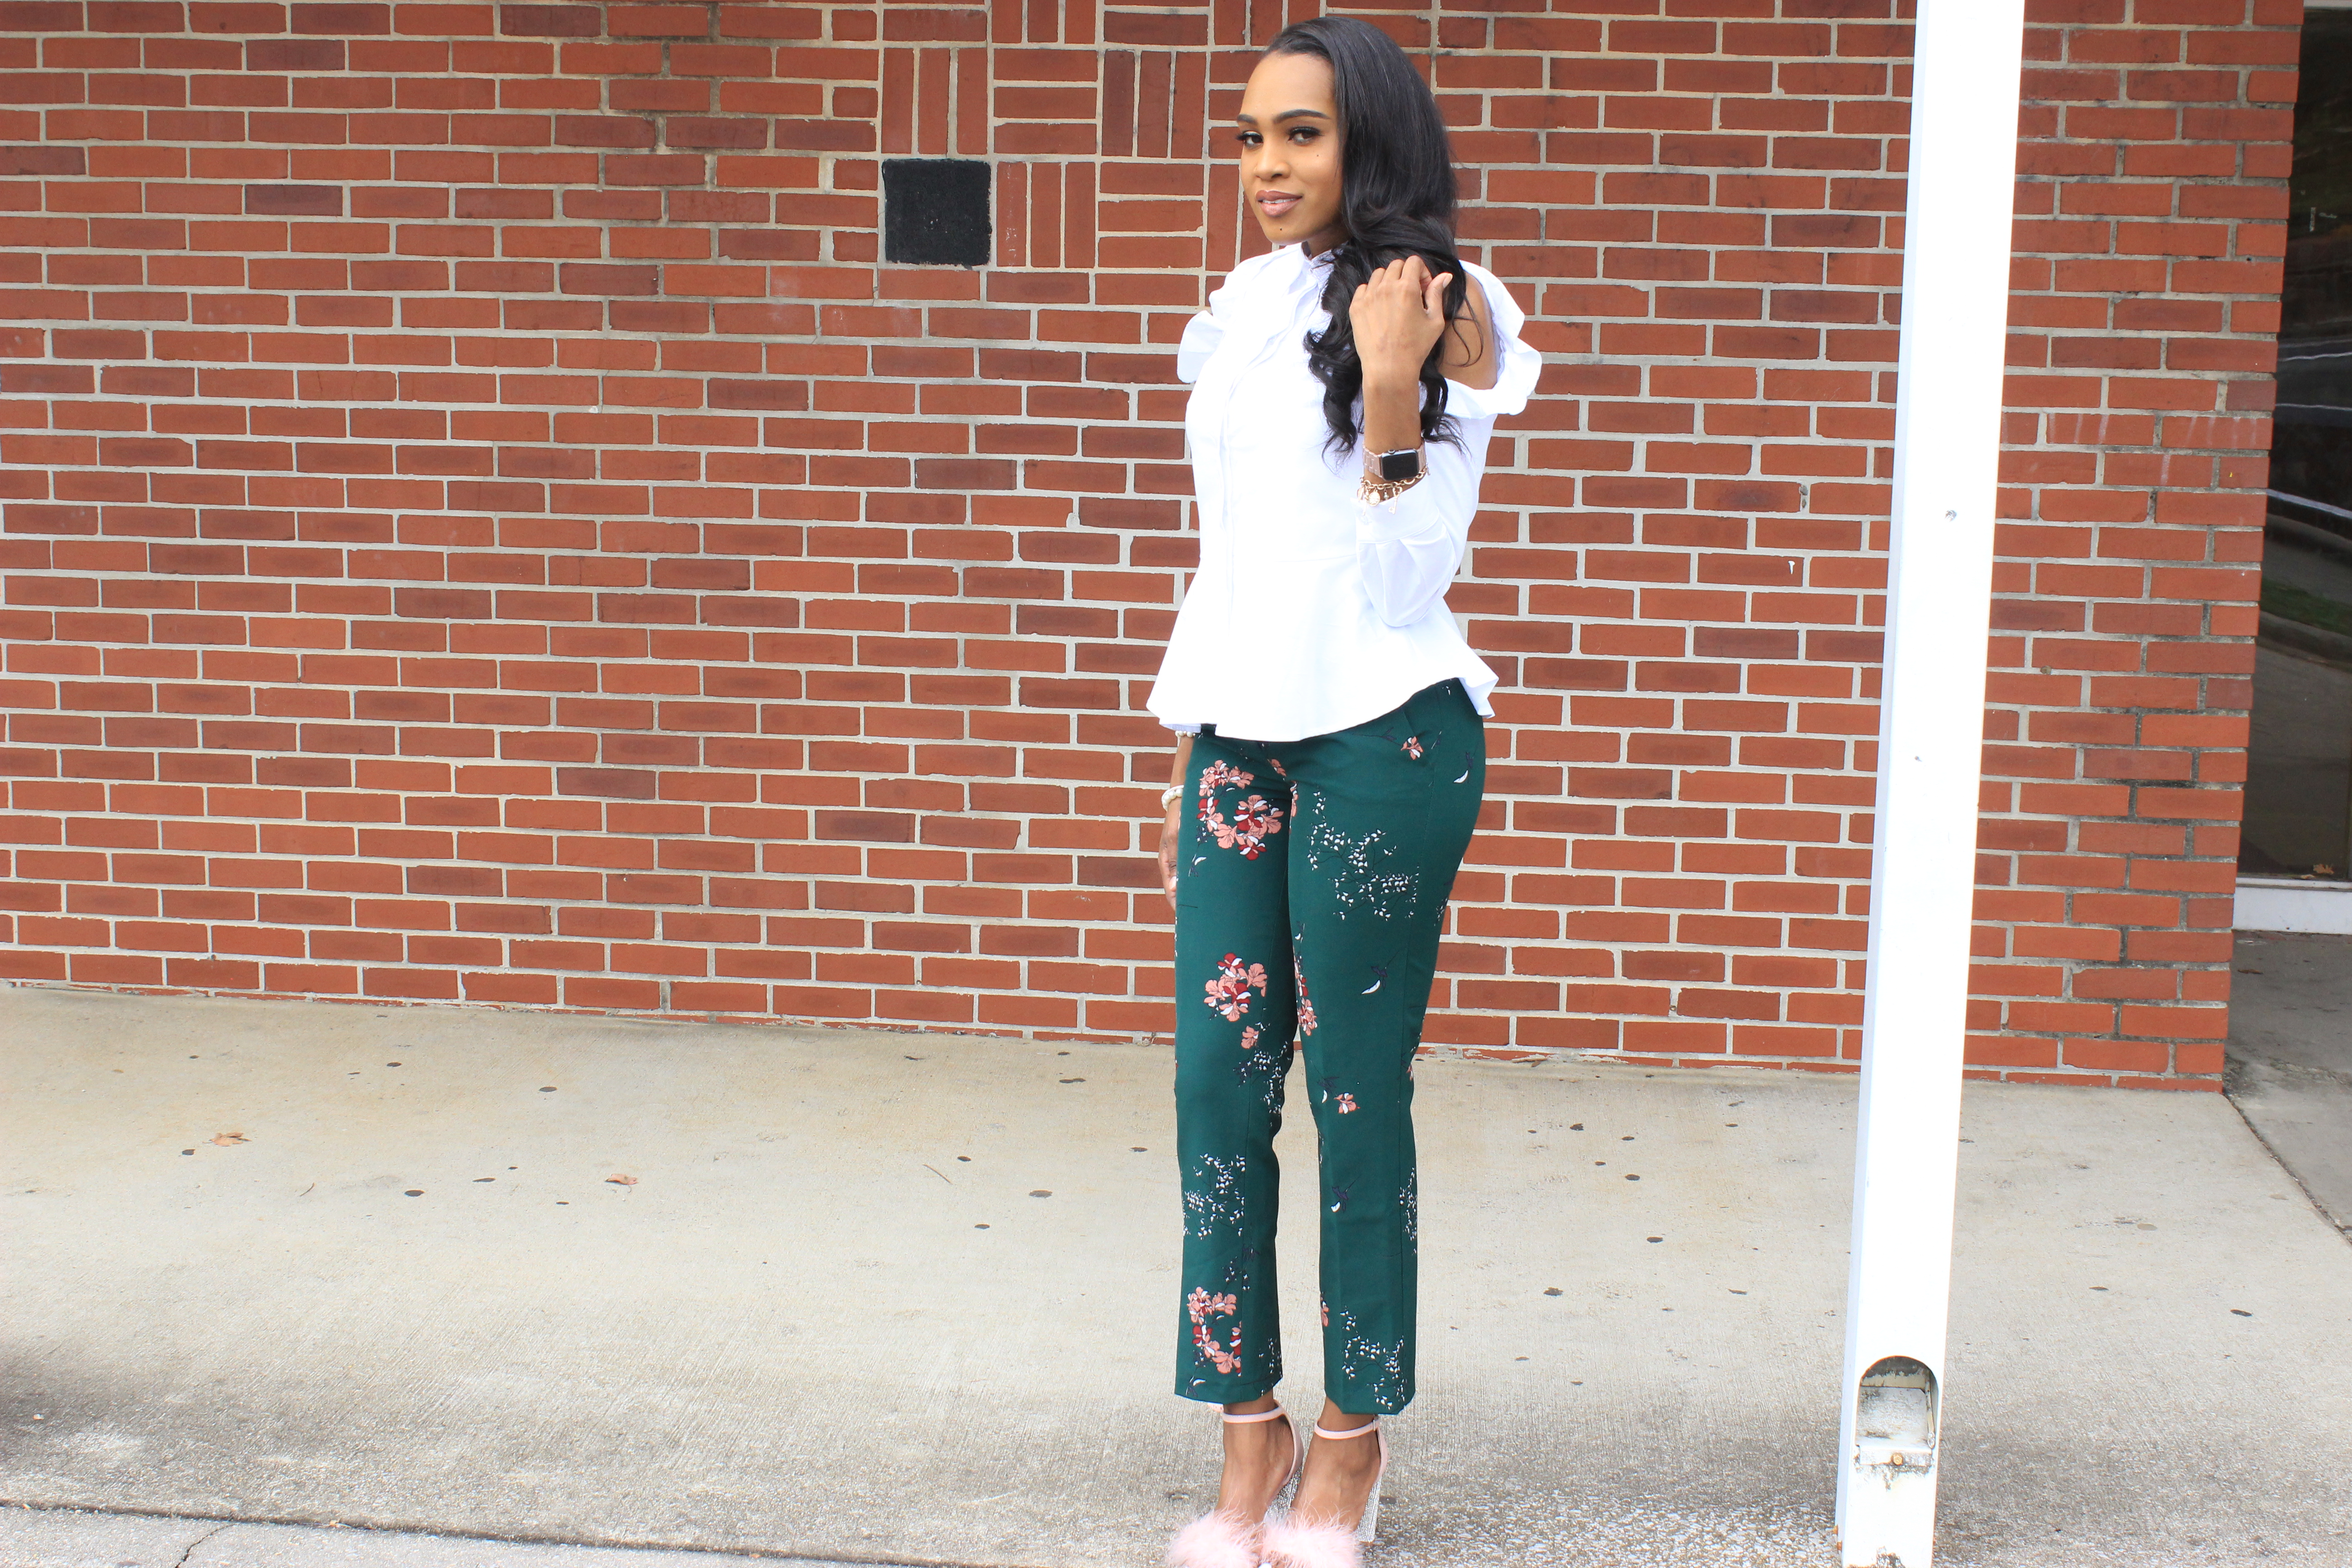 Style-files-Green-floral-printed-ankle-length-carolina-belle-montreal-pants-white-cold-shoulder-ruffle-peplum-blouse-pink-faux-fur-glitter-block-heel-missguided-ankle-strap-sandals-oohlalablog-18